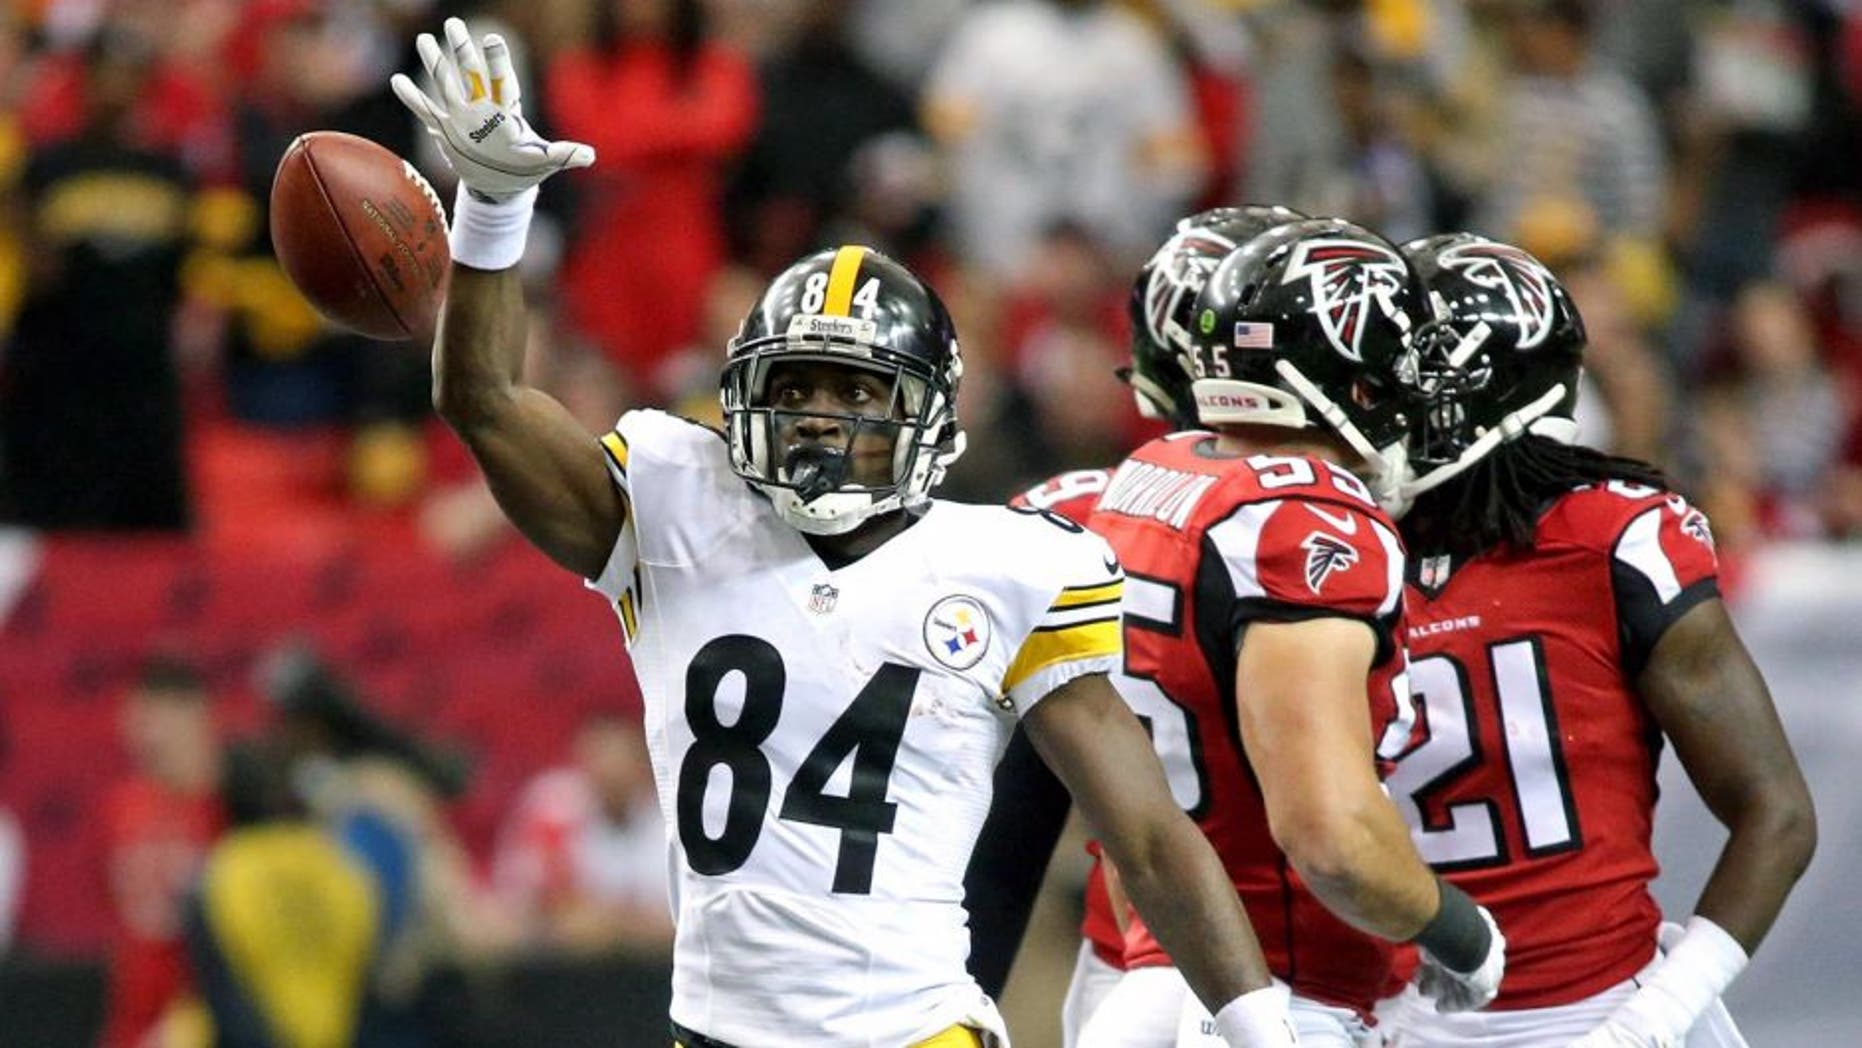 Dec 14, 2014; Atlanta, GA, USA; Pittsburgh Steelers wide receiver Antonio Brown (84) reacts after a first down catch in the first quarter of their game against the Atlanta Falcons at the Georgia Dome. Mandatory Credit: Jason Getz-USA TODAY Sports